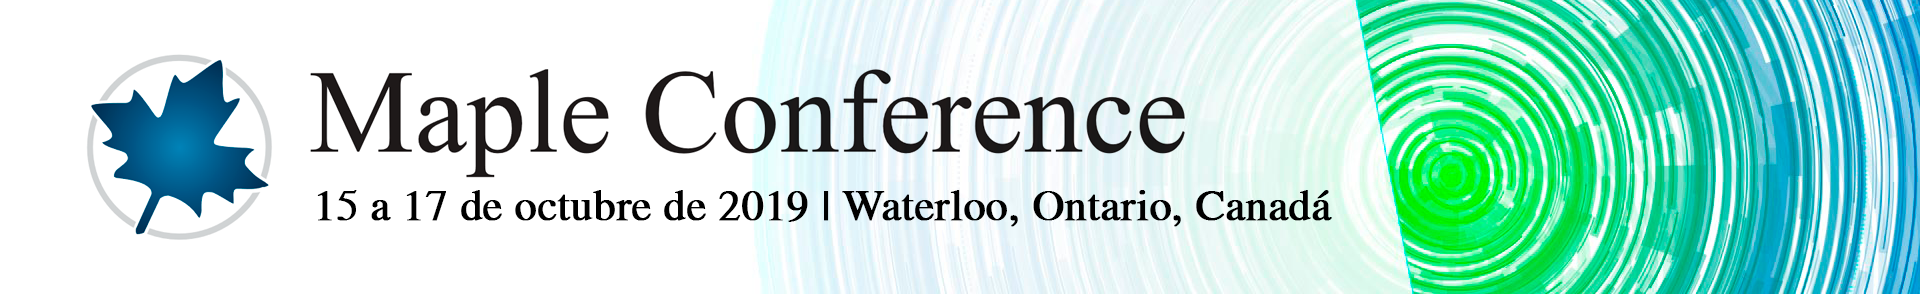 Maple Conference 2019